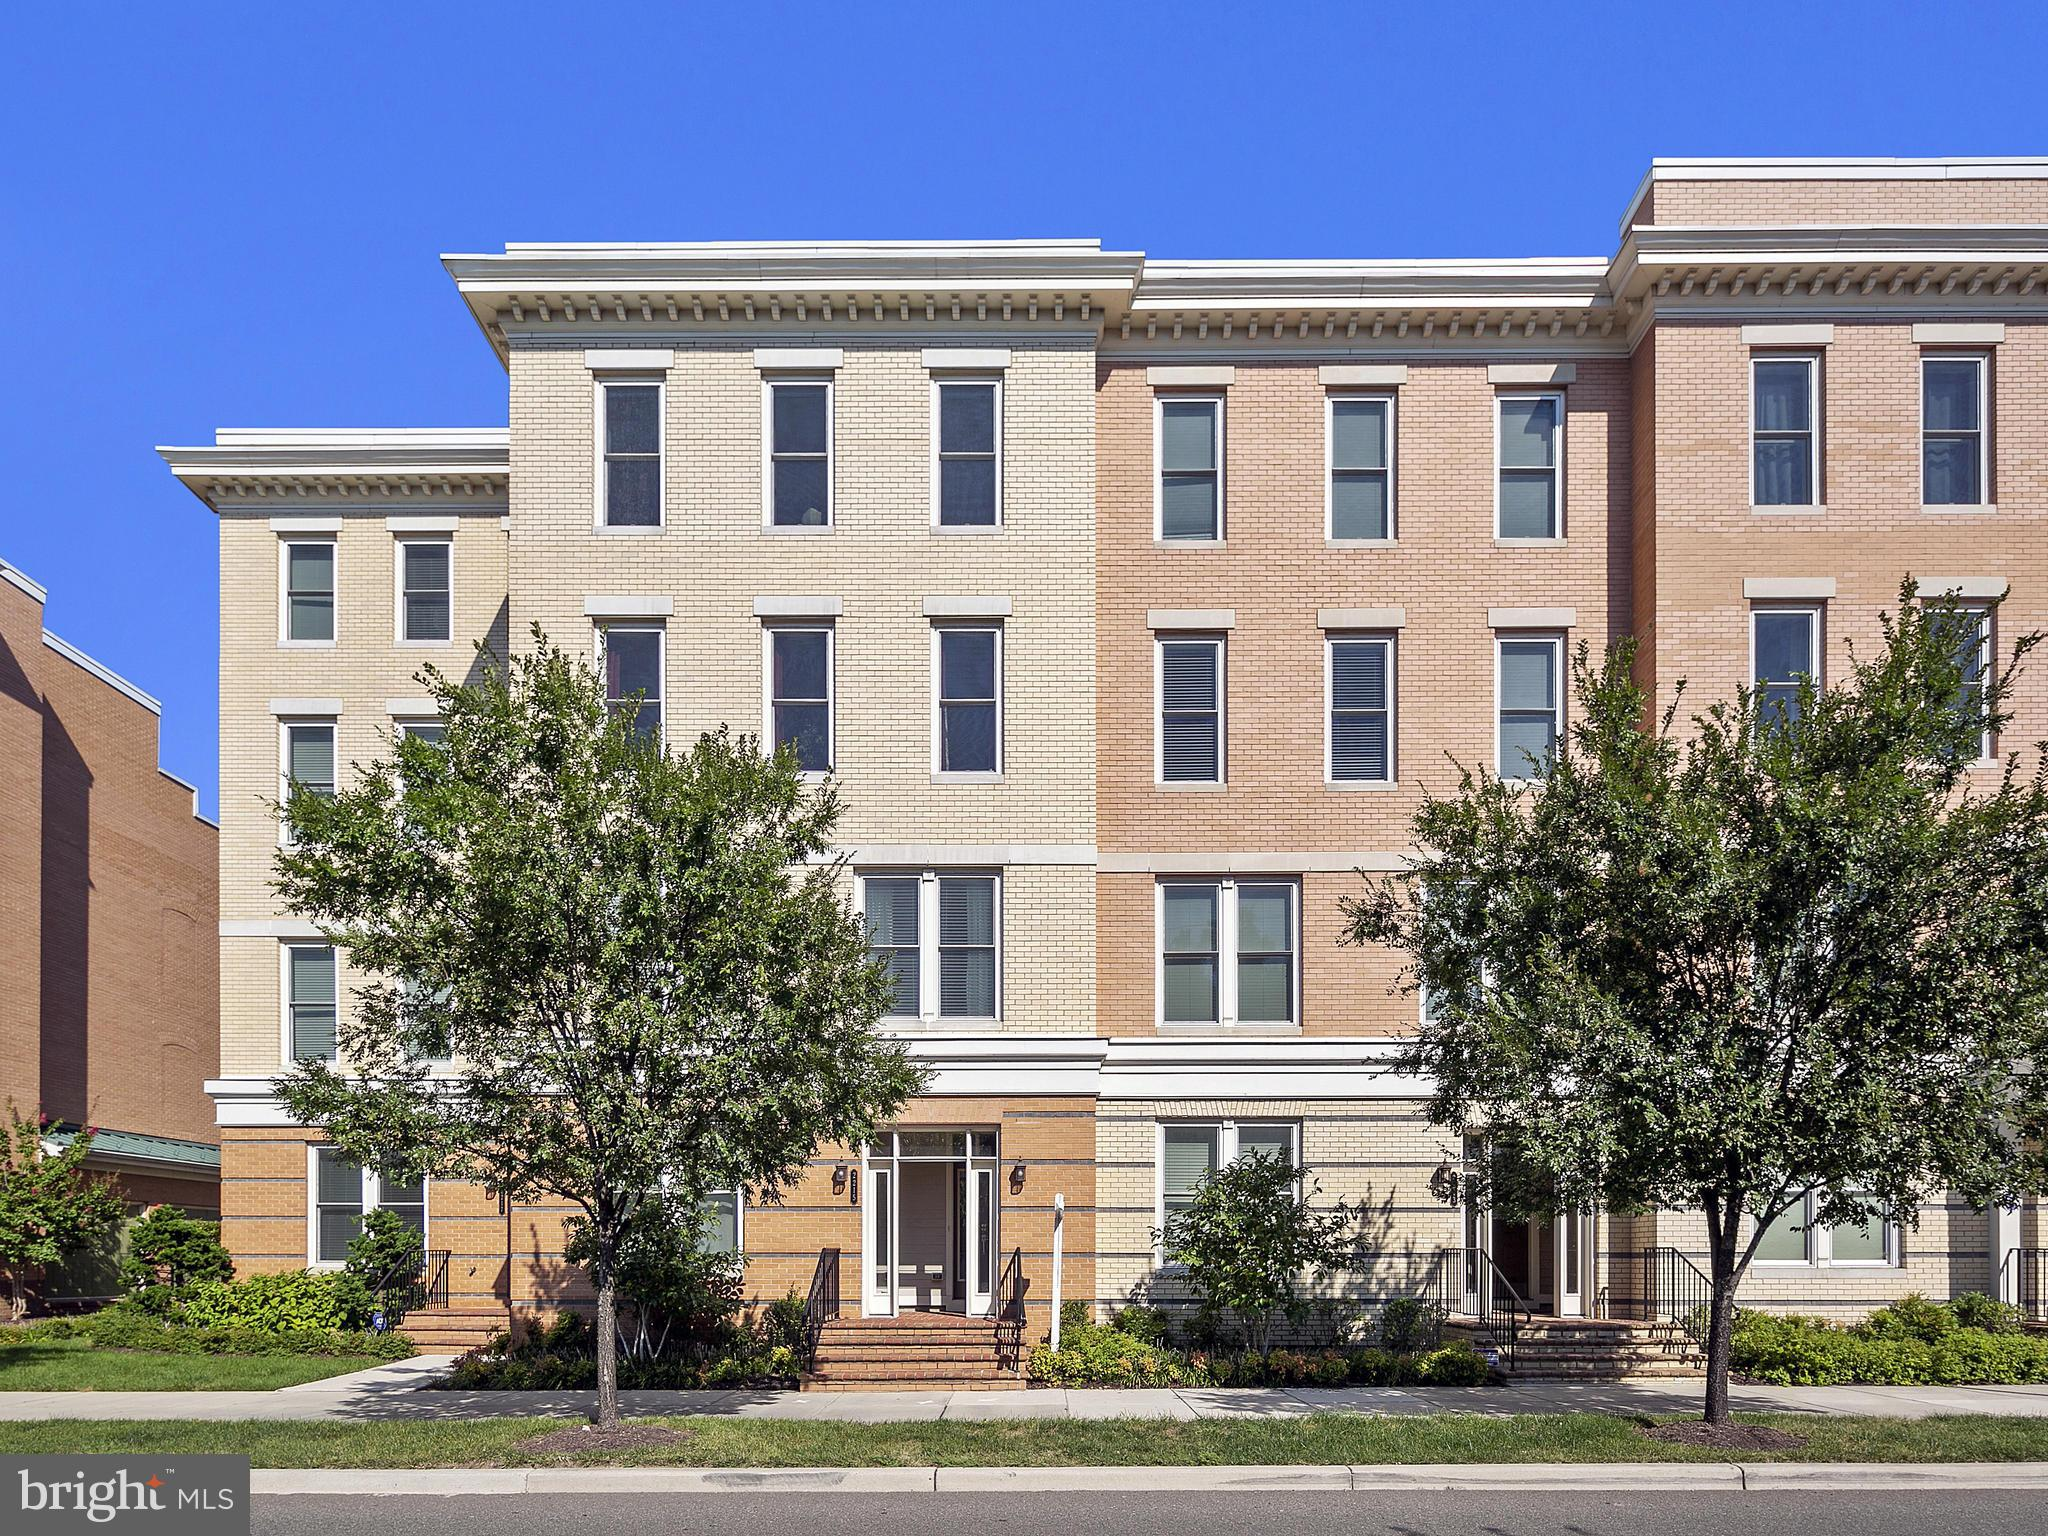 Spacious 2-story, upper level, 2881 sq ft Potomac Yard condo. Bright 3-bedroom, 2.5-bathroom features an open floor plan and modern finishes including gorgeous, dark hardwoods; upgraded kitchen w breakfast nook; high ceilings; balcony; den; 2-sided fireplace and 1-car attached garage. An active lifestyle awaits: only blocks to Del Ray, tennis/basketball courts, playgrounds, jogging/biking trails.